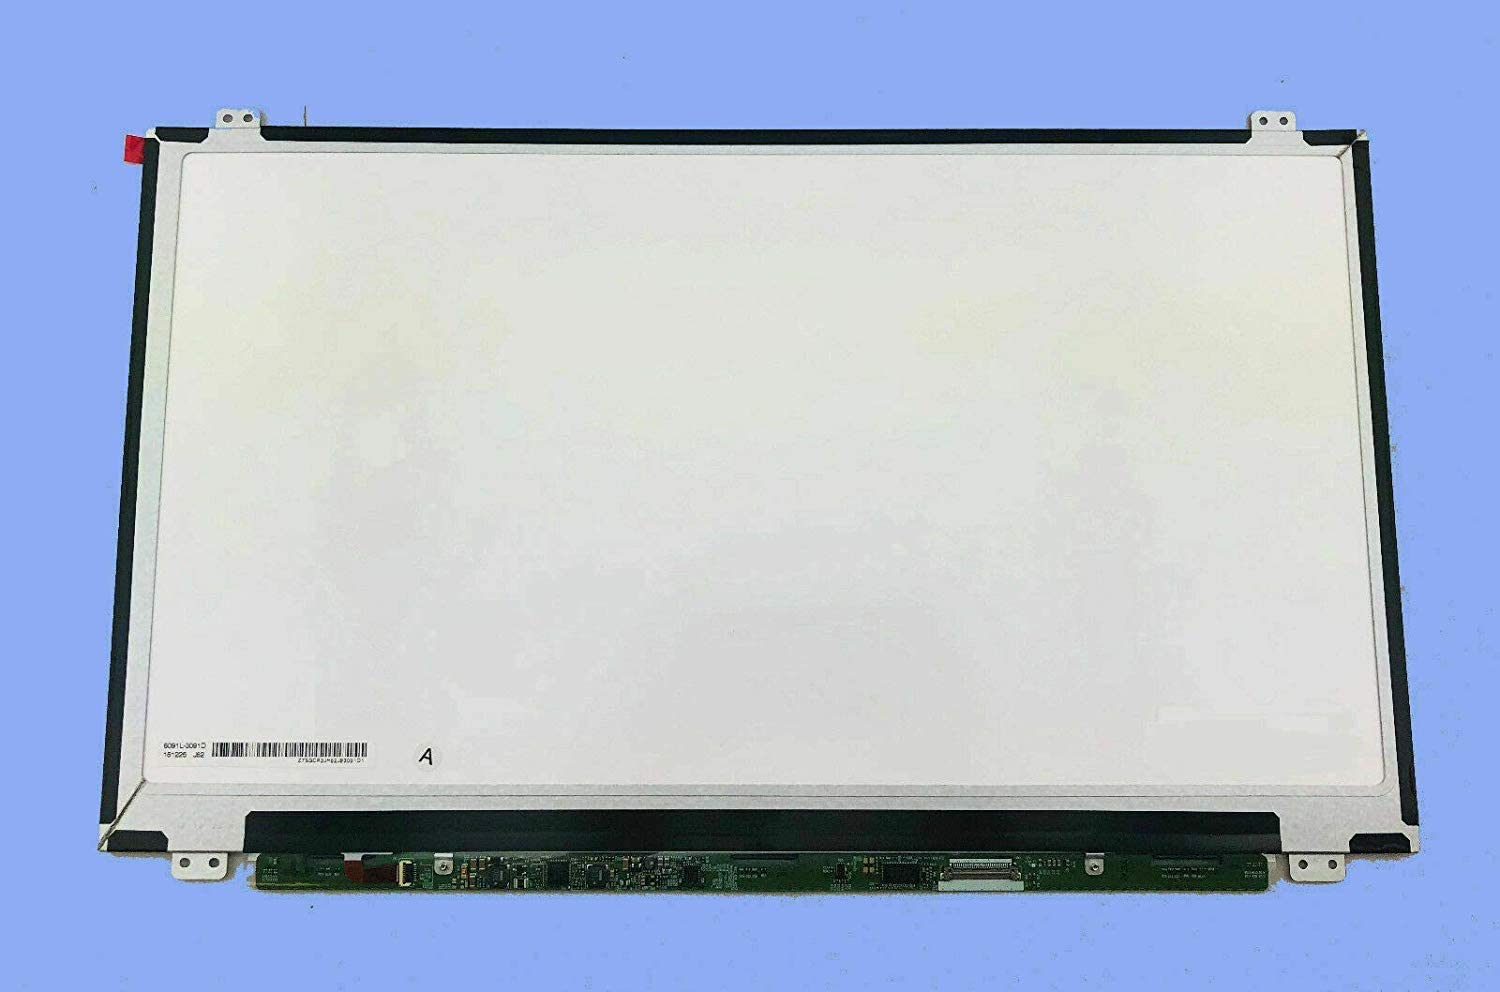 JYLTK New Genuine 15.6 FHD No-Touch Fits HP Elitebook 850 G4 1920x1080 LCD Screen IPS LED Display Panel Only